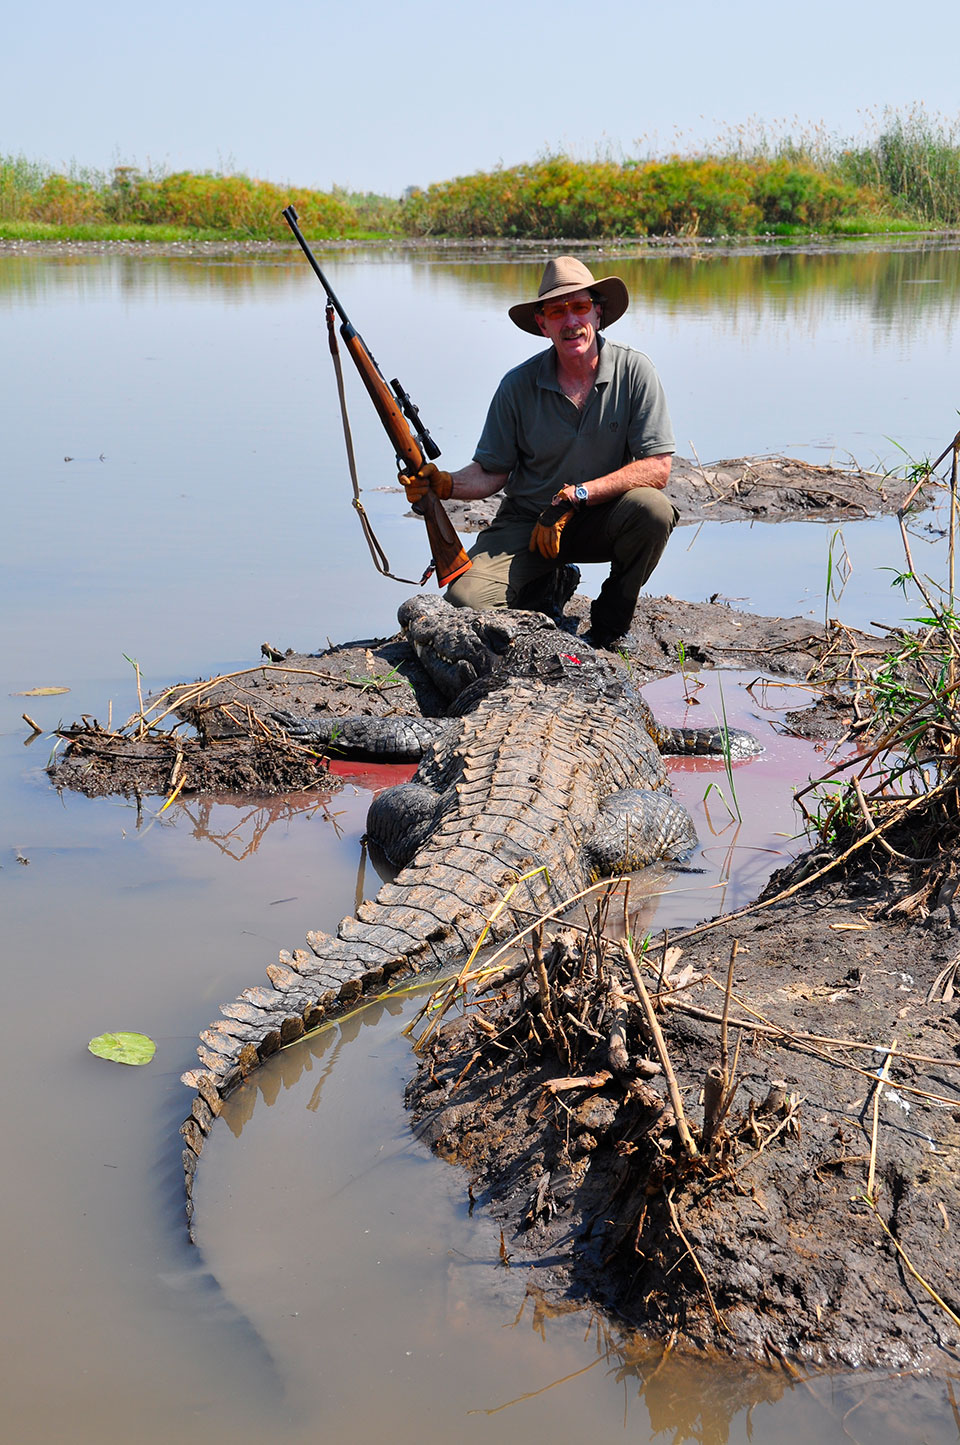 trophy-crocodile-Namibia-hunting-safaris.jpg